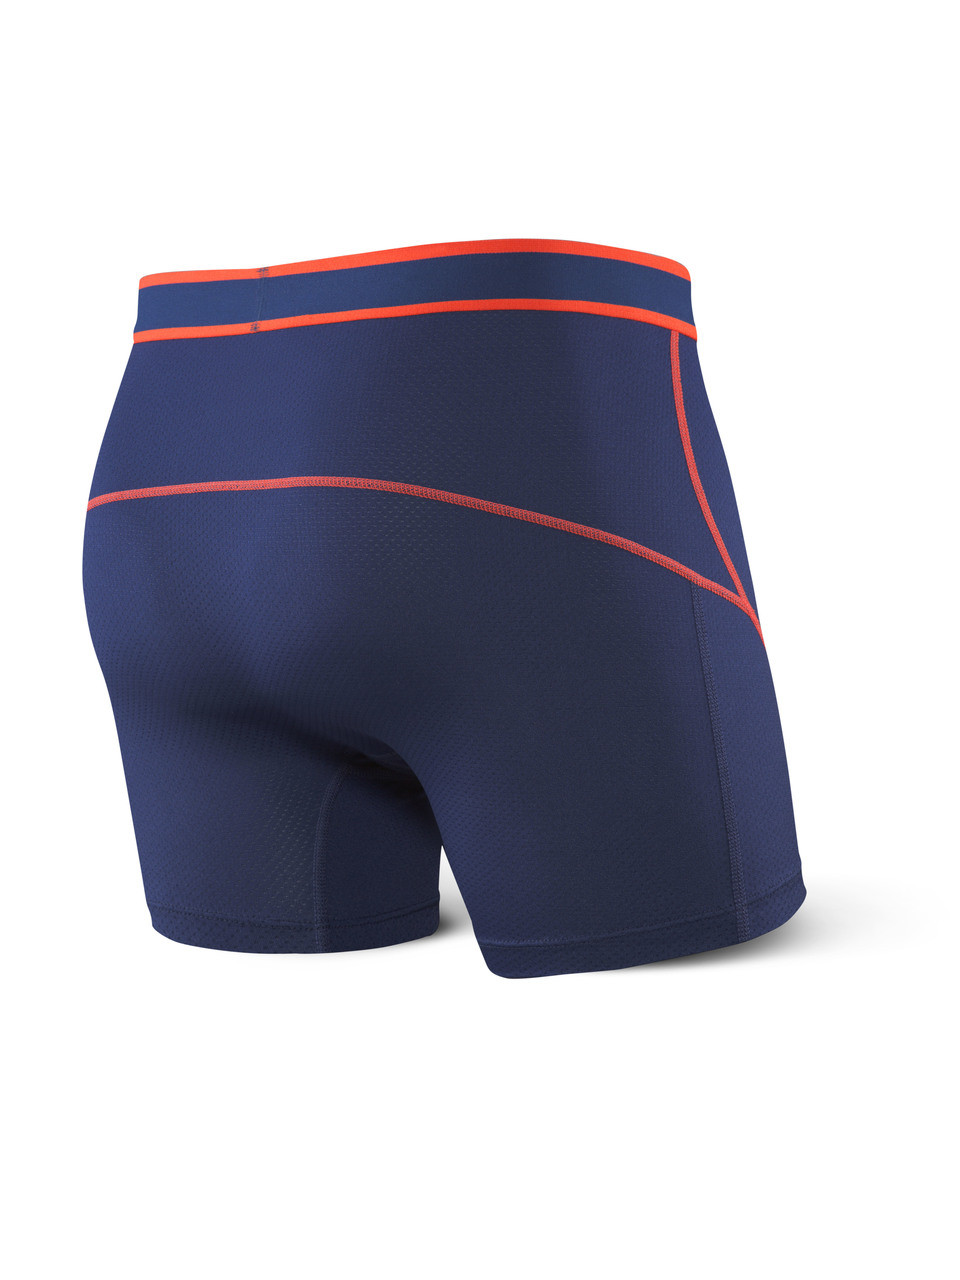 Saxx Kinetic Boxer, sports underwear